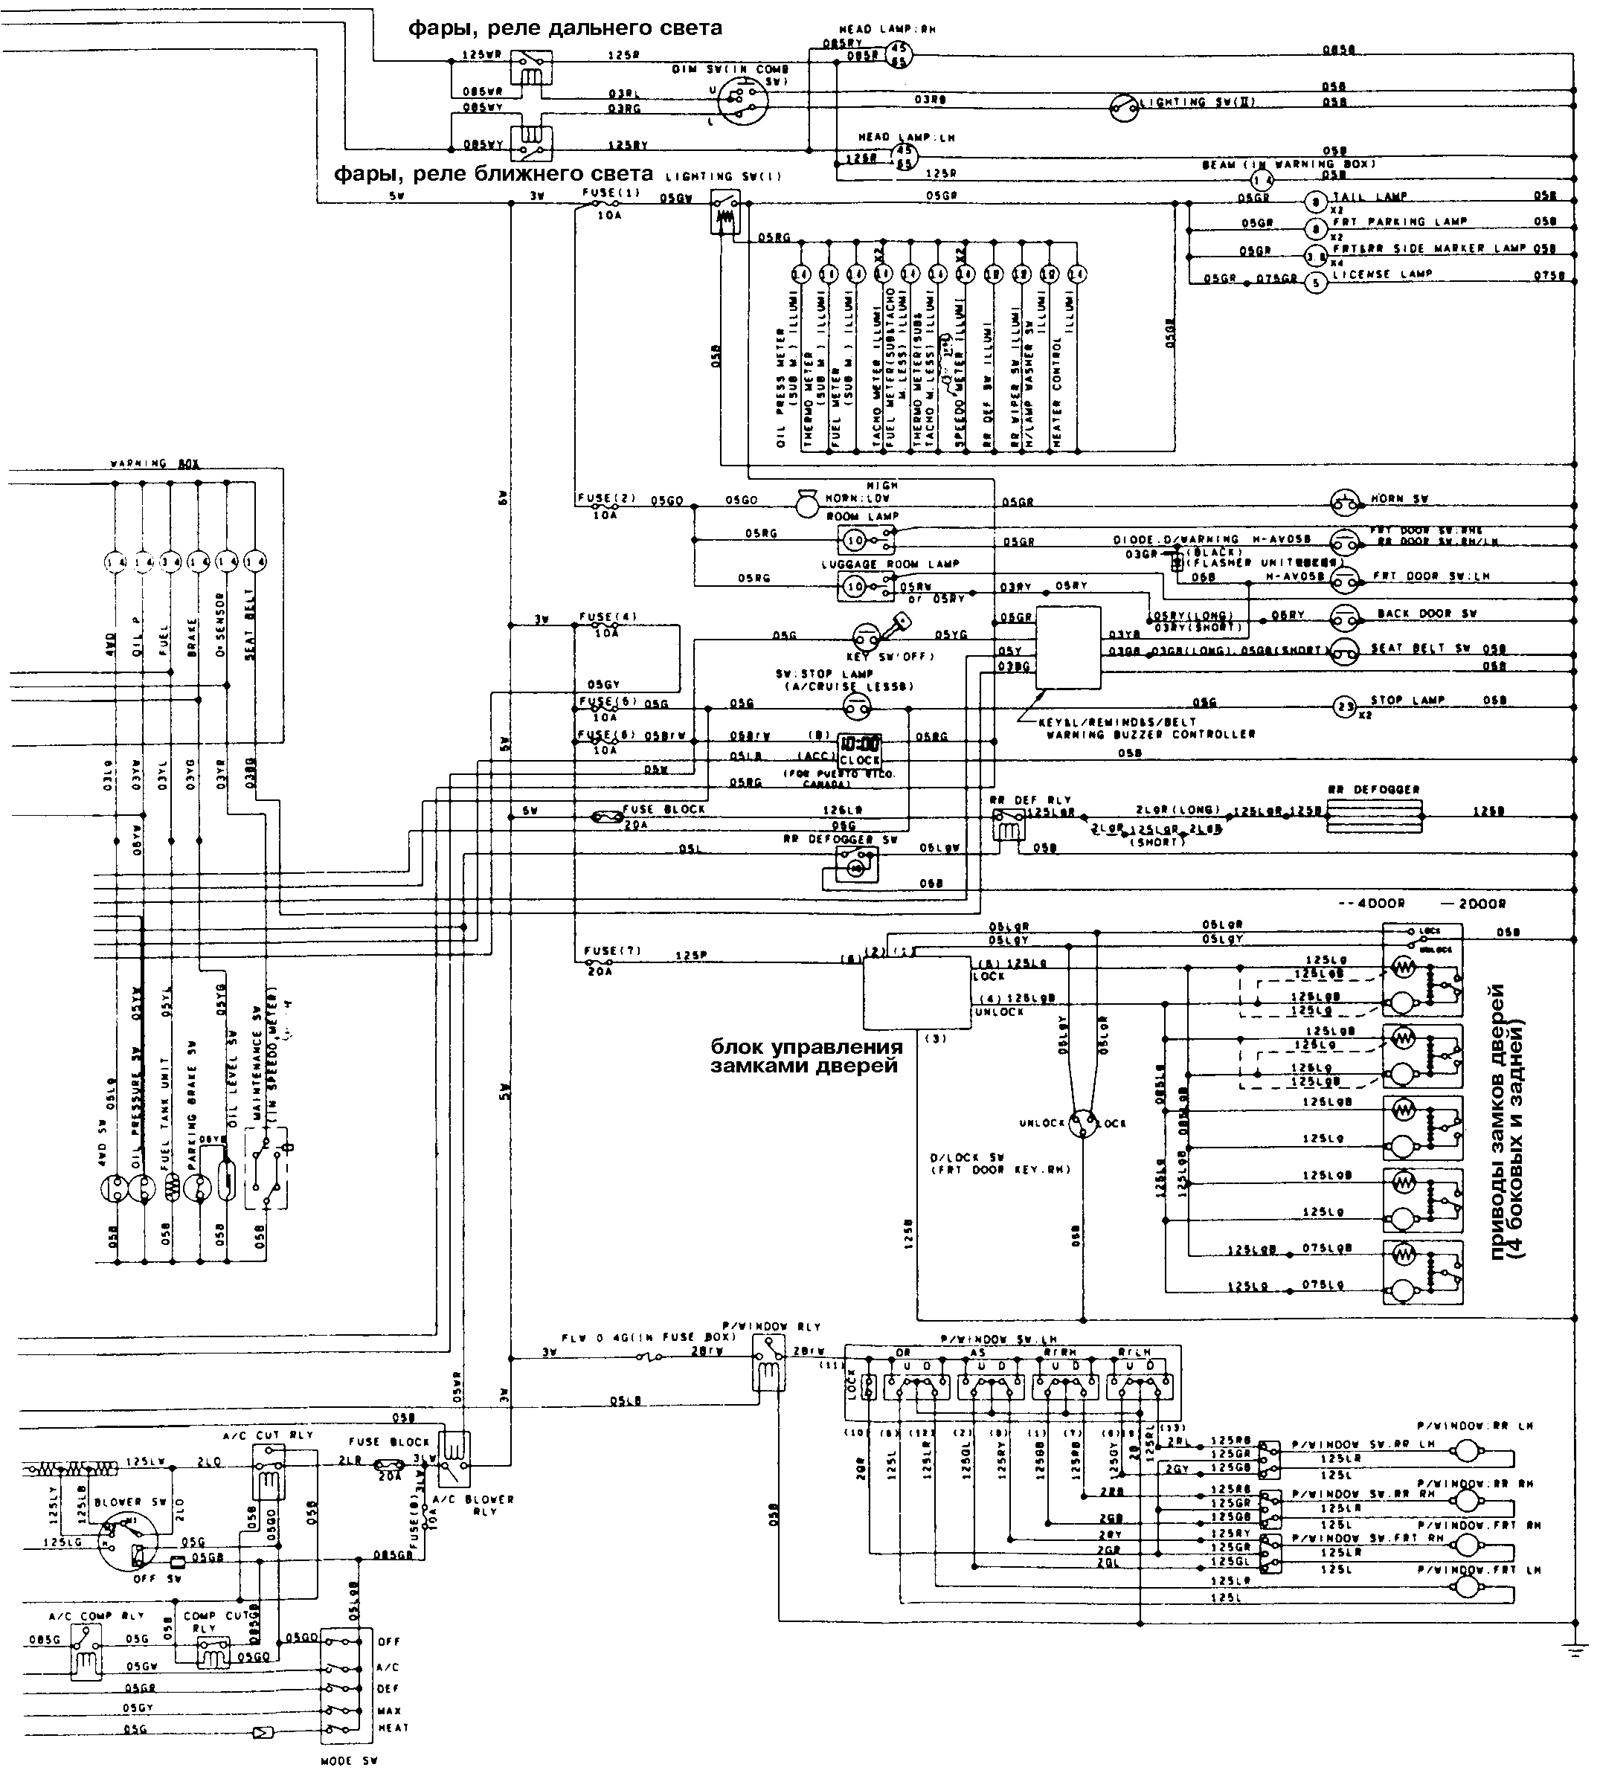 Isuzu Wiring Diagrams 07 Fvr Fuse Diagram Trusted For Gmc W6500 Free 1988 Truck Engine Harness 1991 Trooper Smart Images Gallery